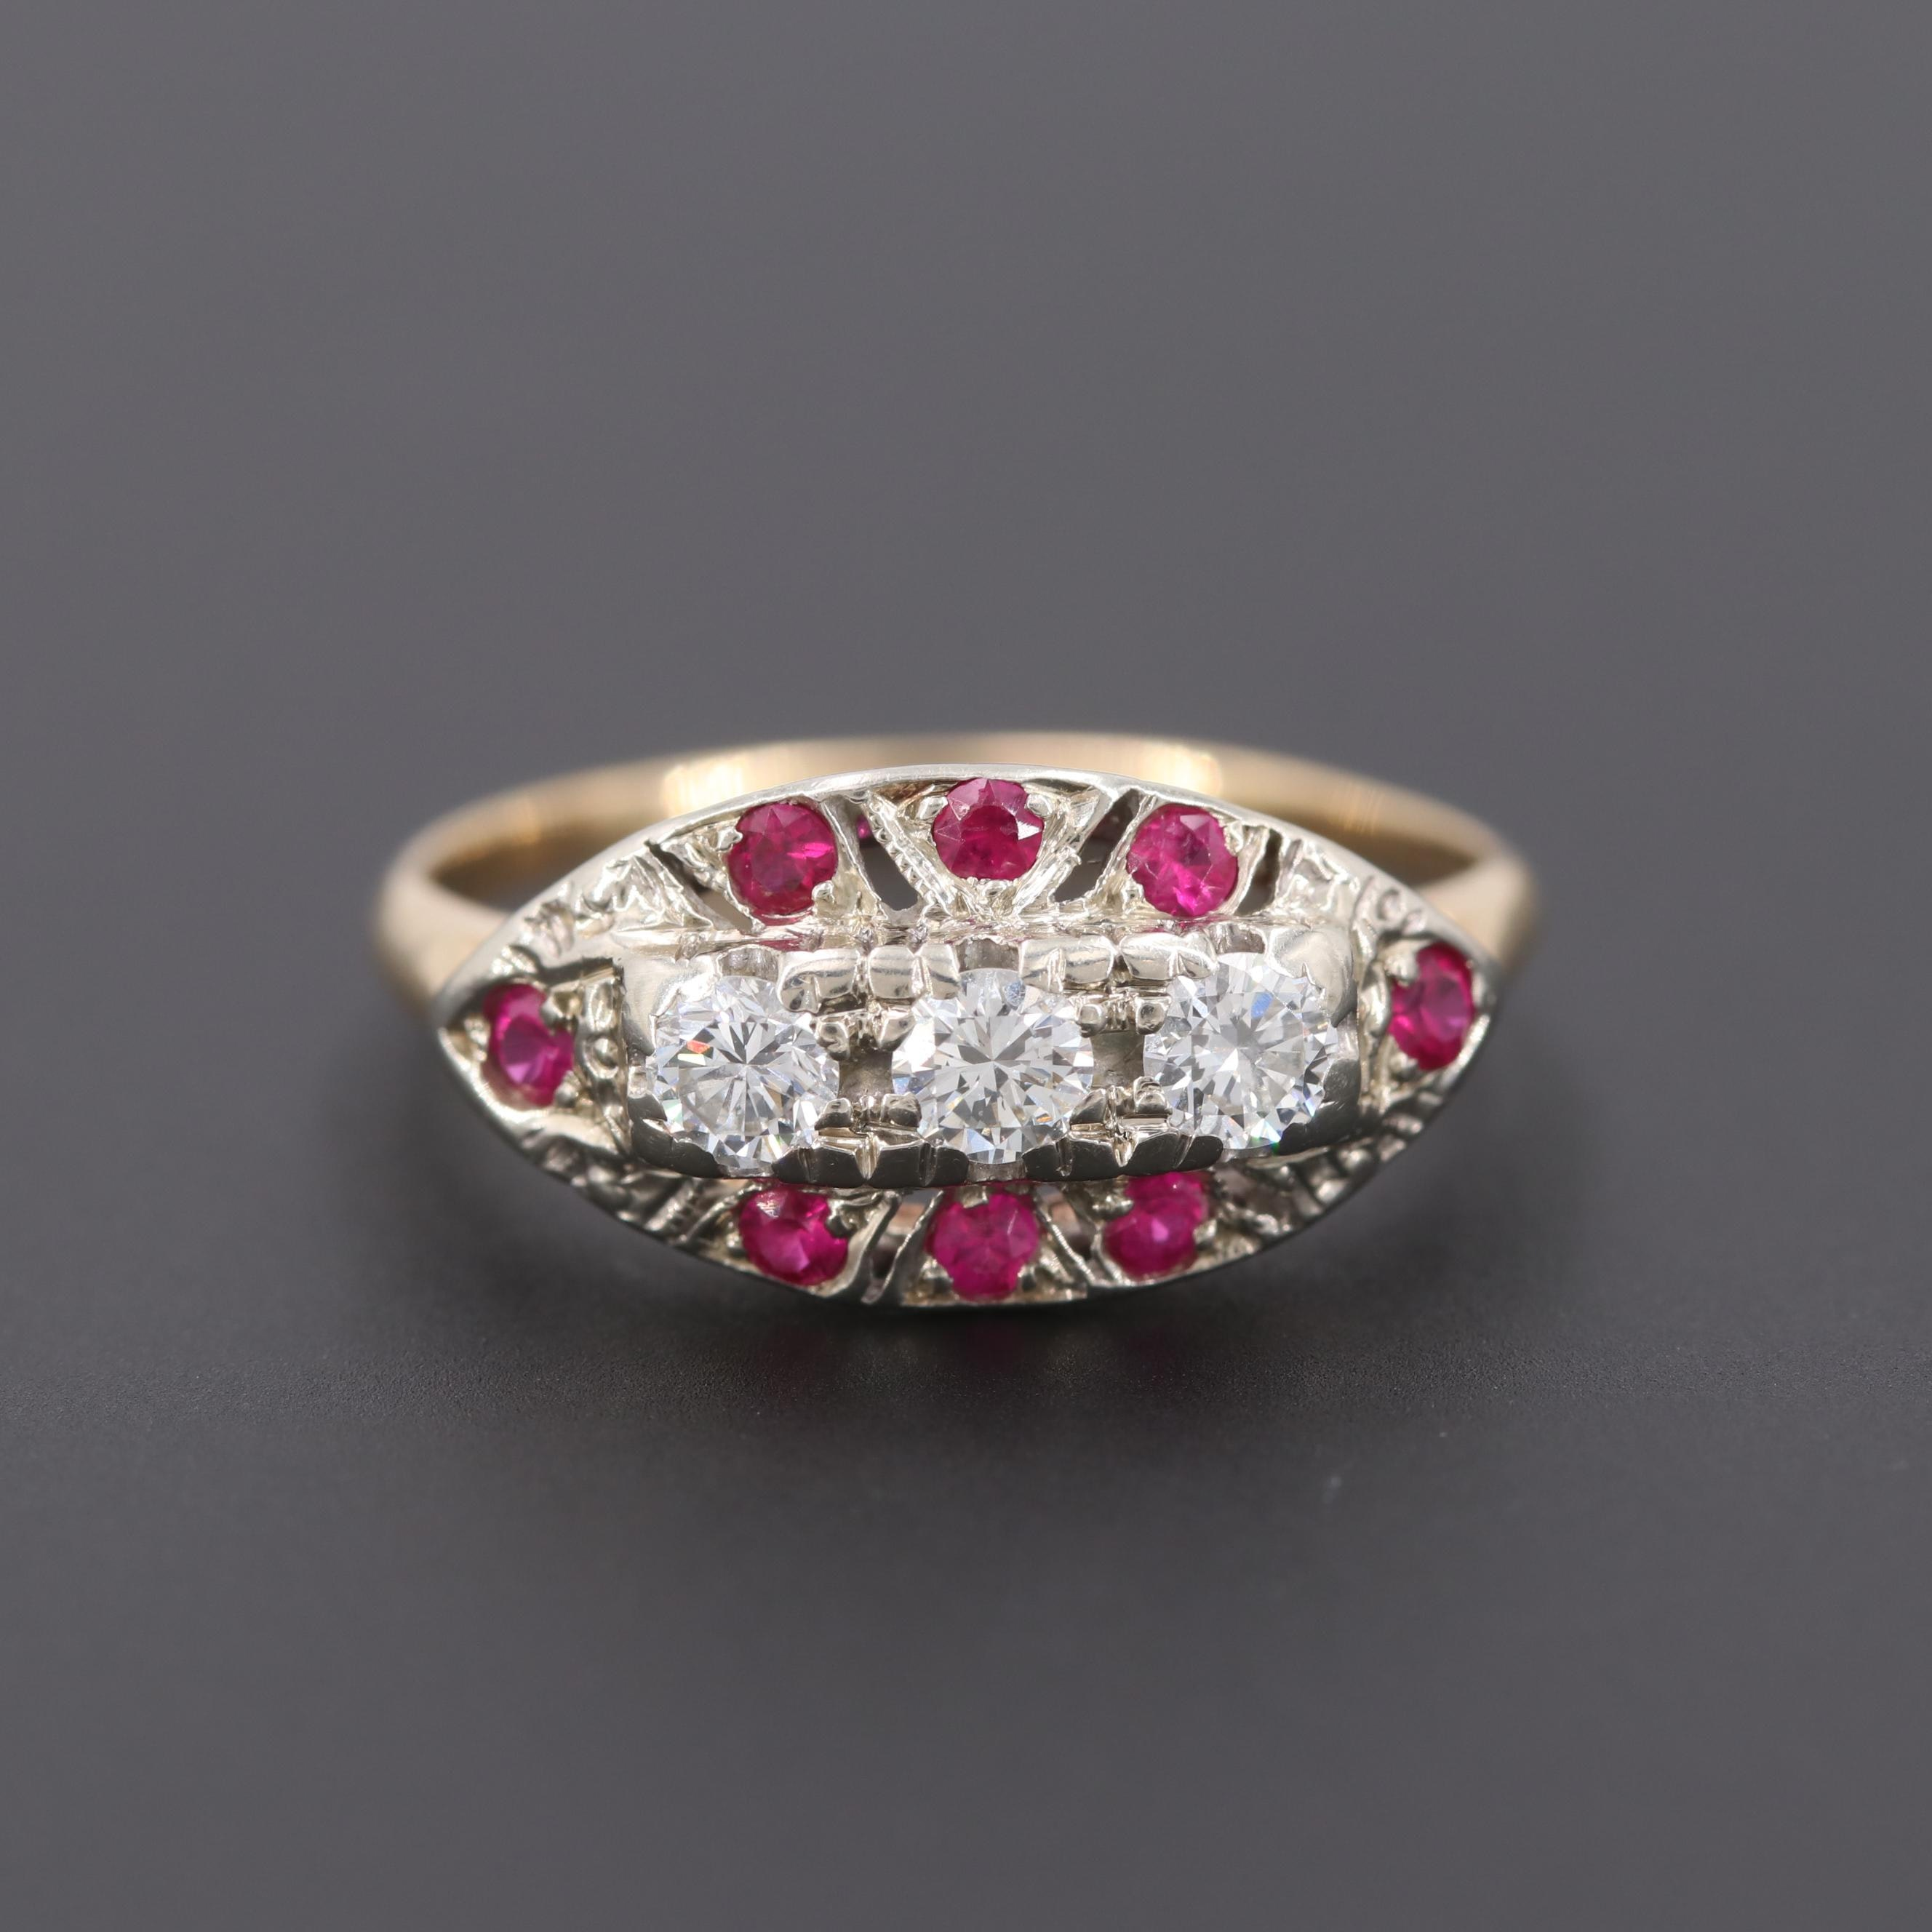 14K Yellow and White Gold Diamond and Synthetic Ruby Ring